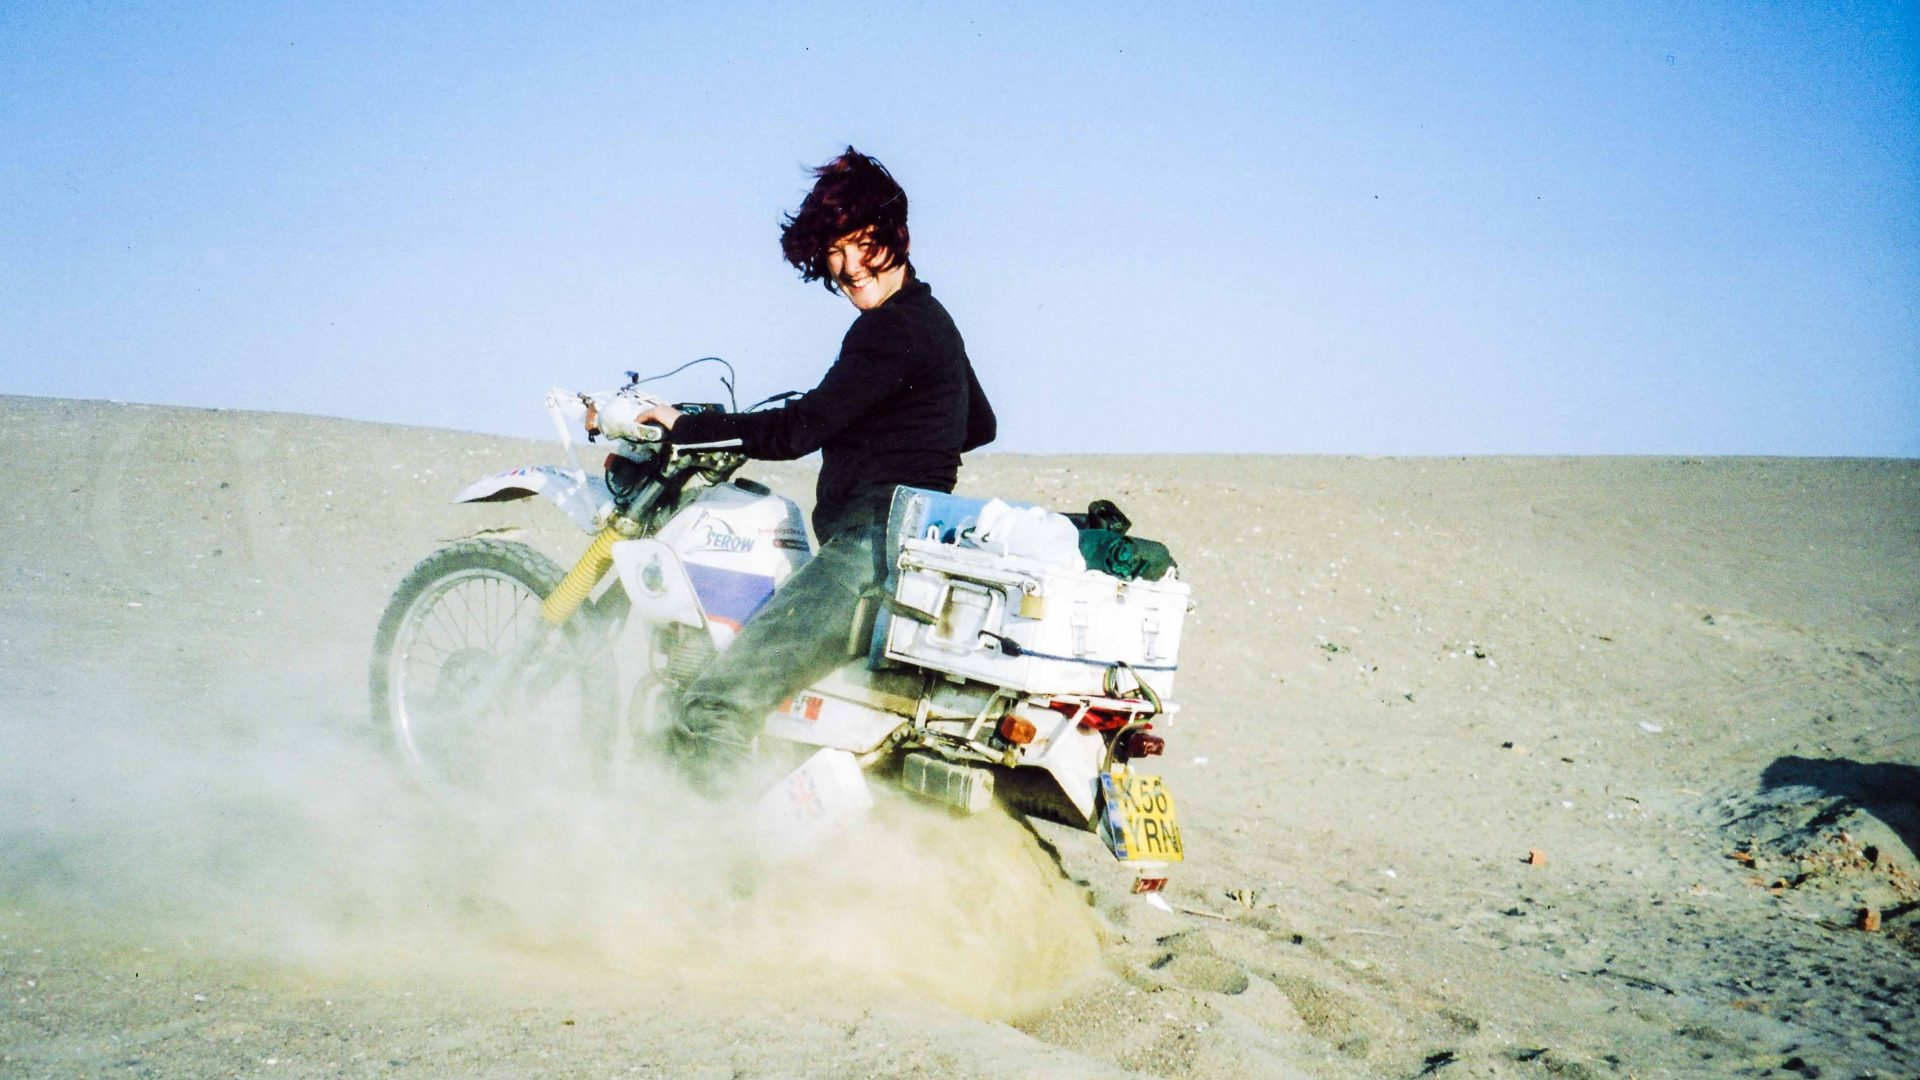 Lois rides her motorcycle through the desert in Peru.